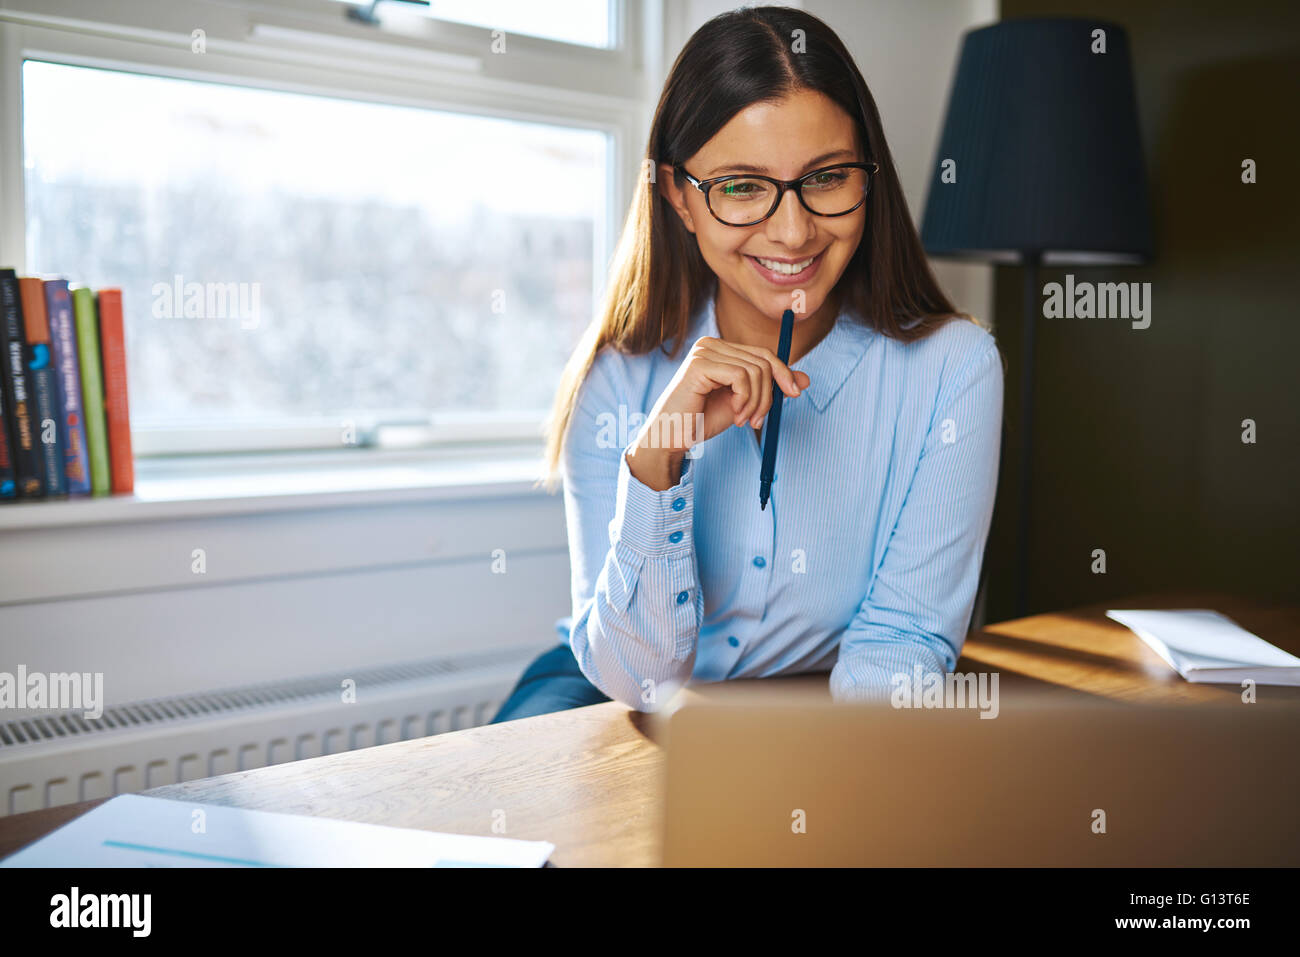 Smiling young businesswoman working at home sitting at her desk reading information on the laptop with a pleased - Stock Image